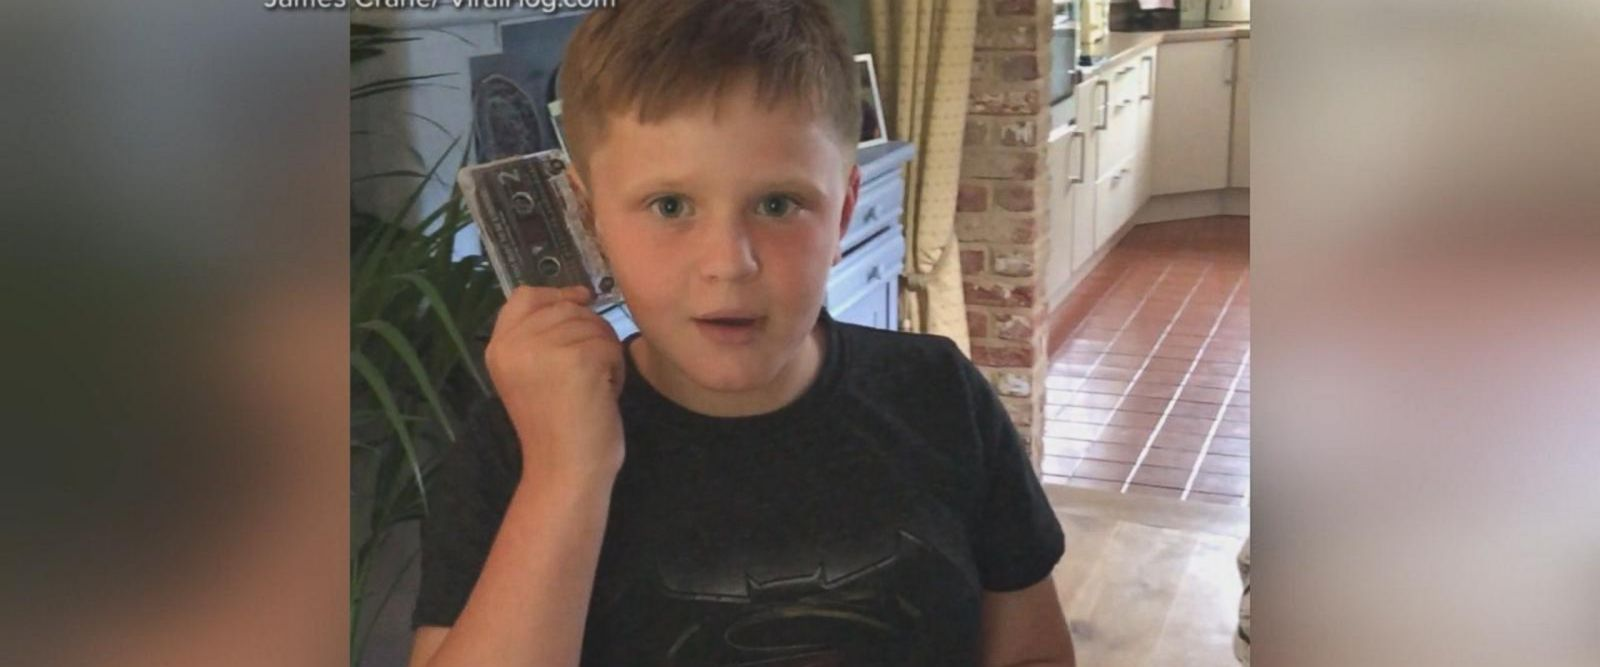 VIDEO: Viral videos show young children baffled by old tech